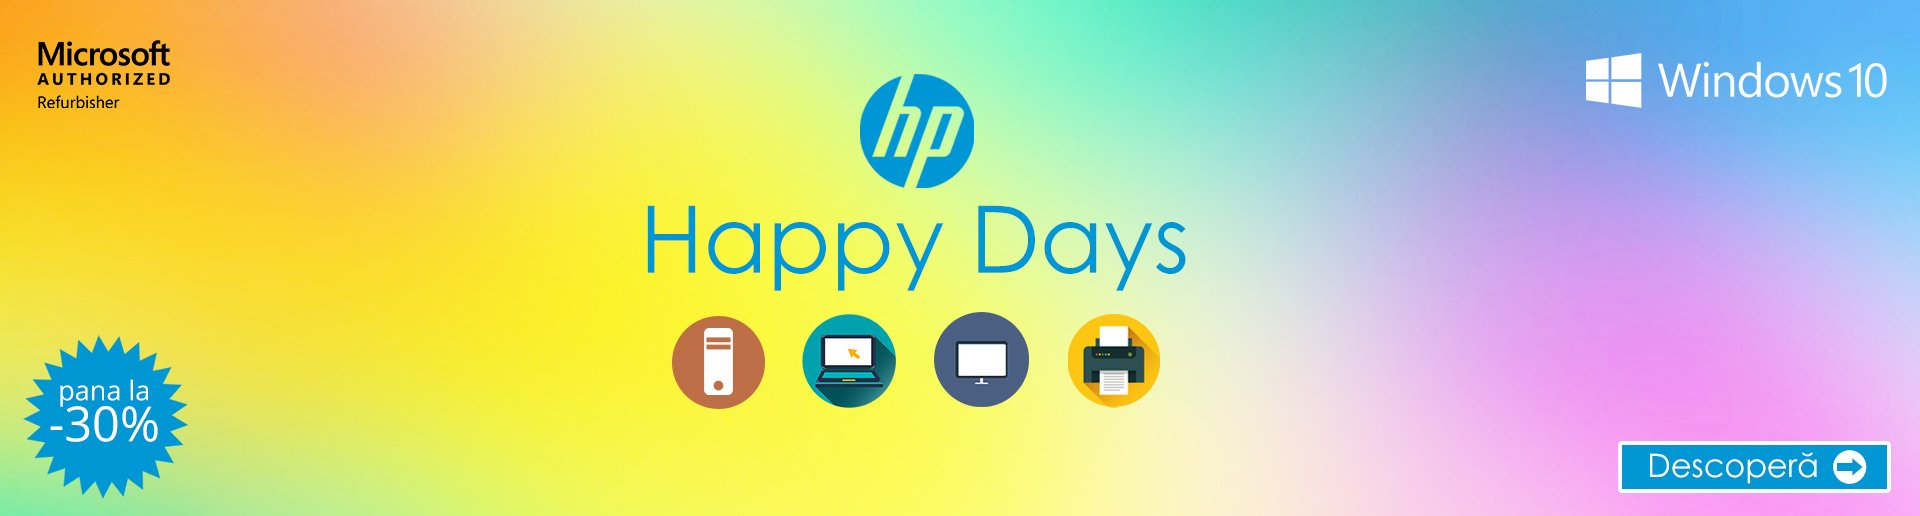 hp-happy-days